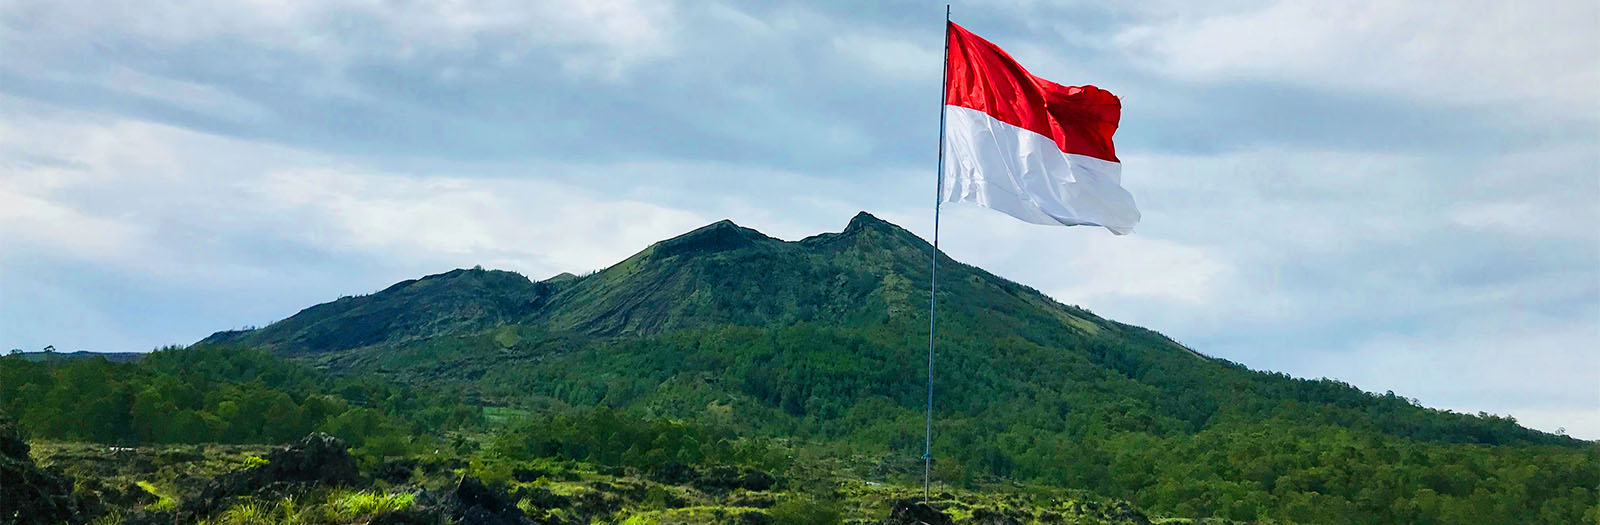 Indonesian flag outdoors